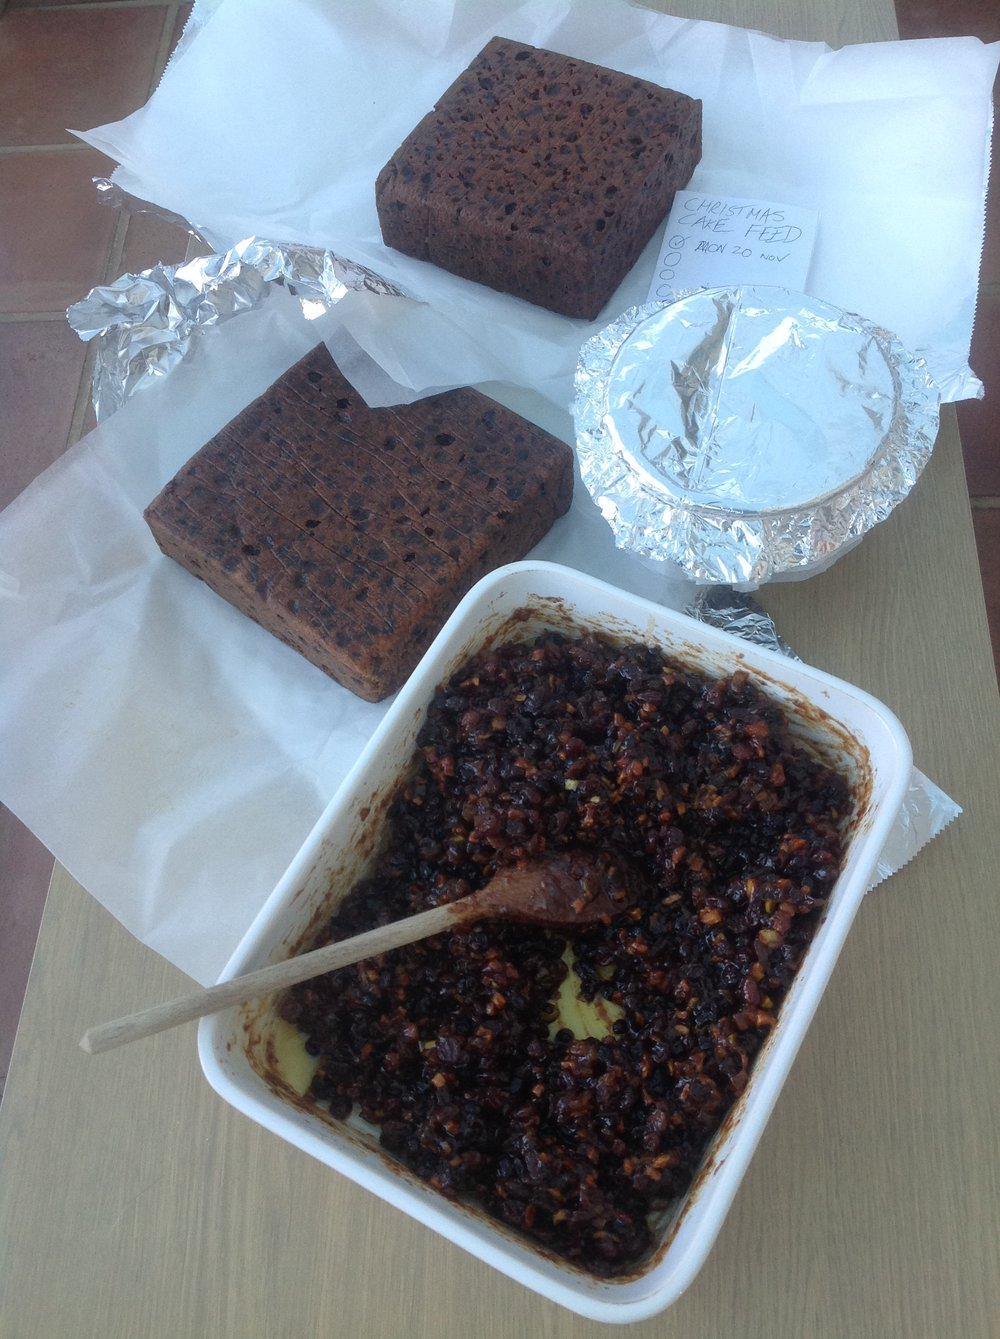 #NoHardFeelings - Last week in the kitchen produced a Creole Cake, a Christmas Cake, a Christmas Pudding and Mincemeat... all from Delia's seasonal recipes.